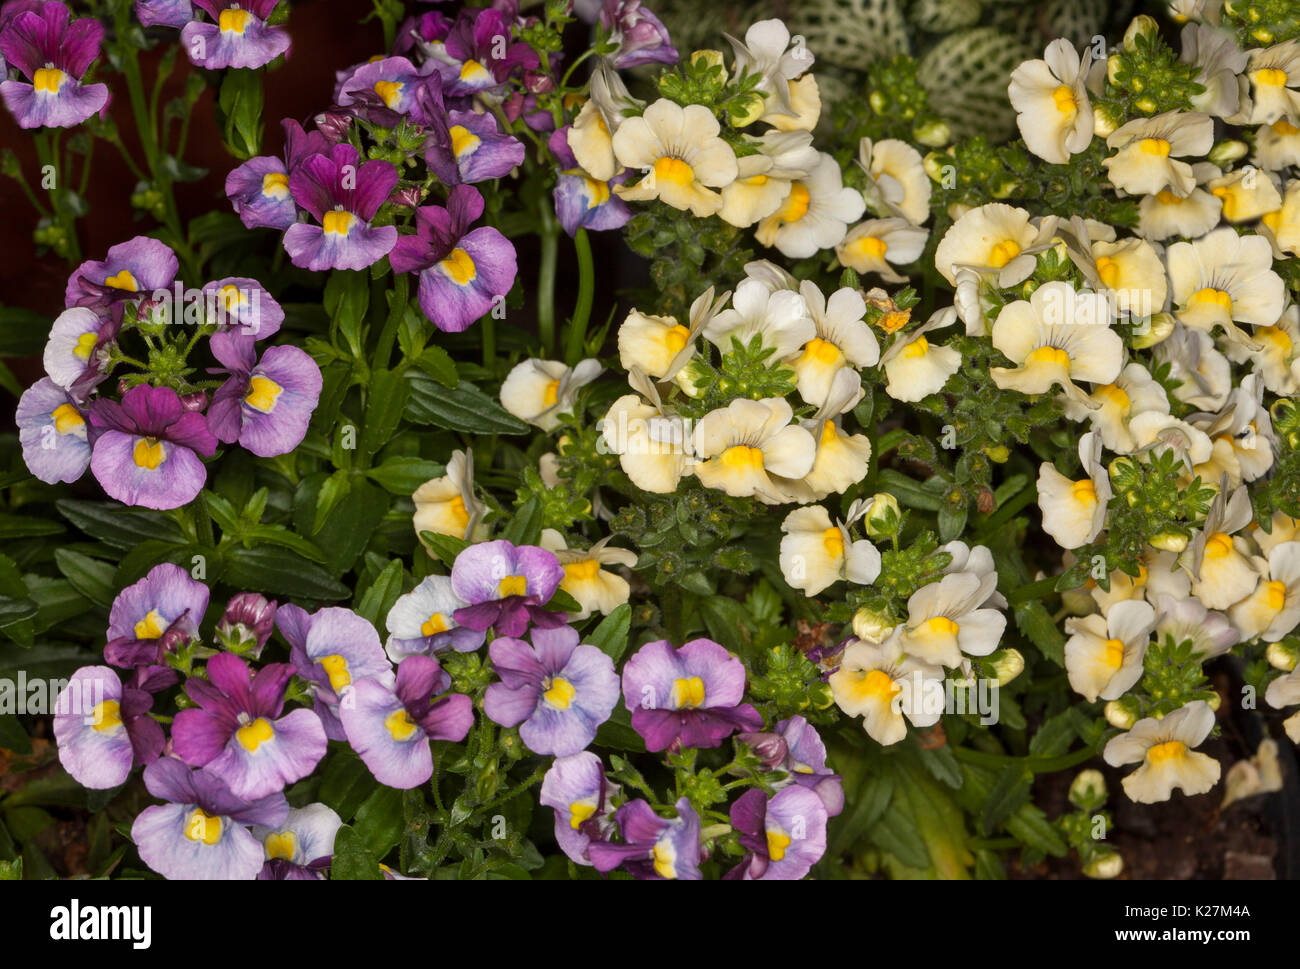 Cluster of flowers in contrasting colours, yellow and purple flowers of Nemesia 'Fruit Tingle' with dark - Stock Image